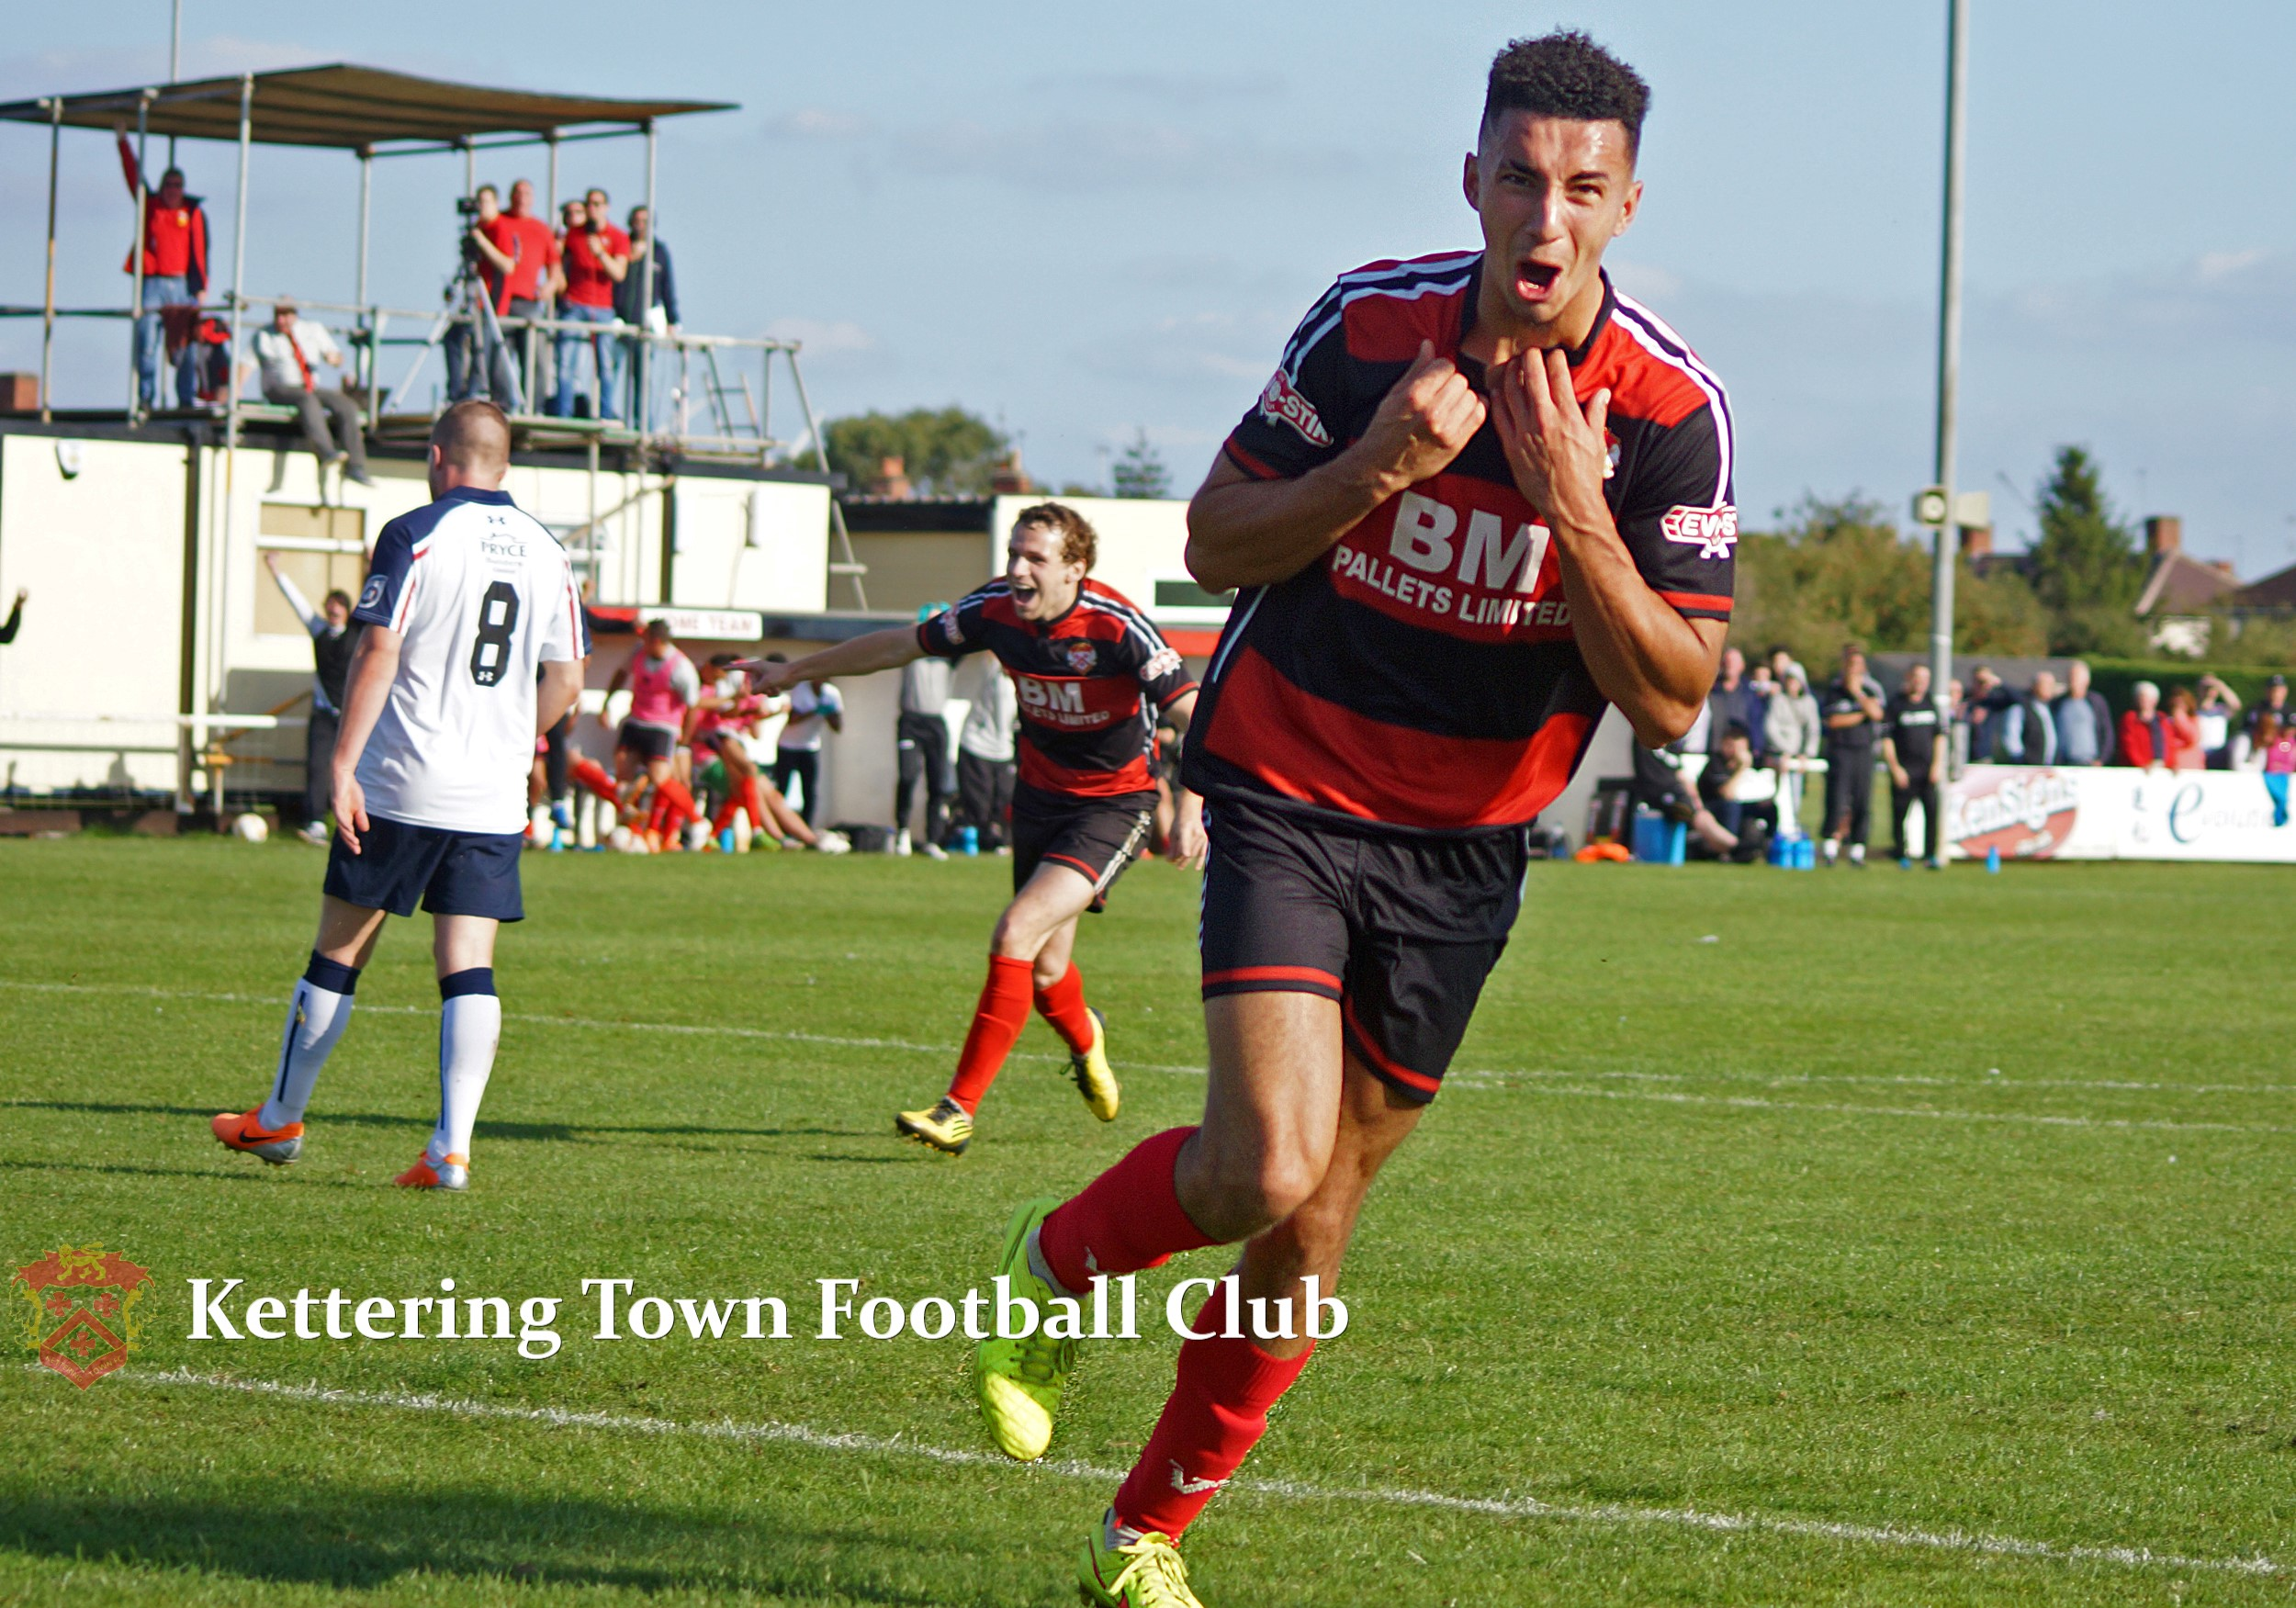 Kettering Town 2-1 AFC Telford | Kettering Town Football Club